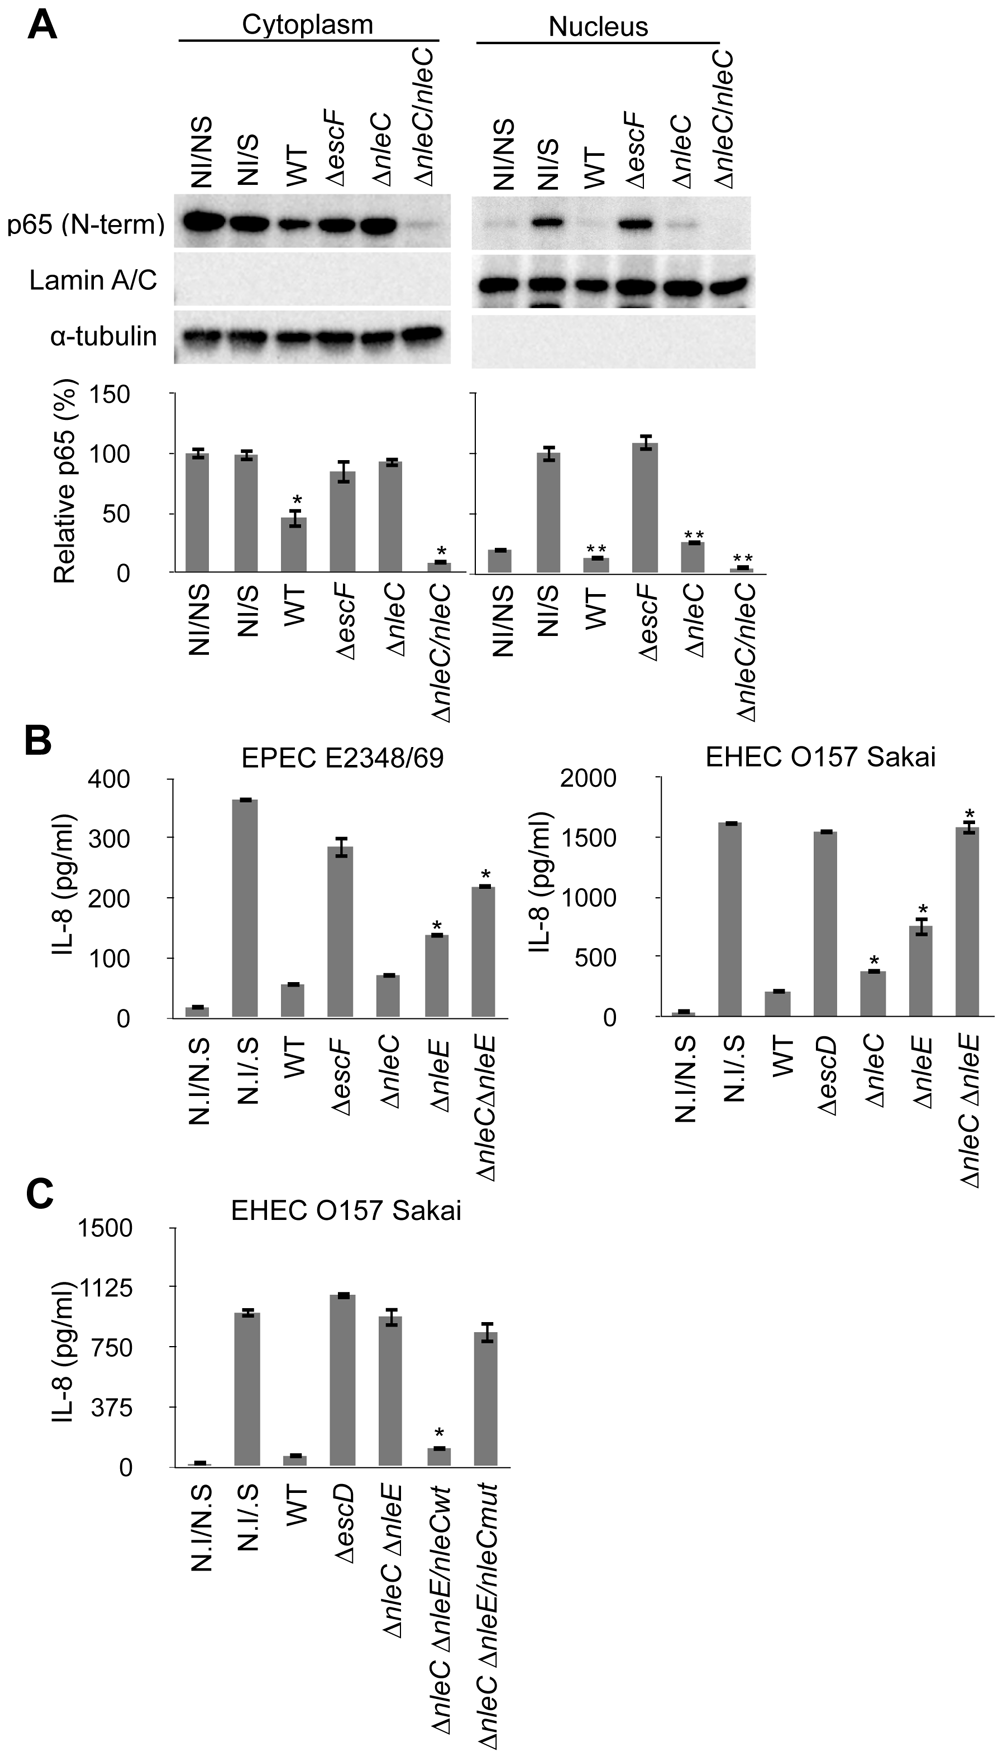 Concurrent deficiency in <i>nleE</i> and <i>nleC</i> impedes the immune-suppressive ability of EPEC/EHEC.